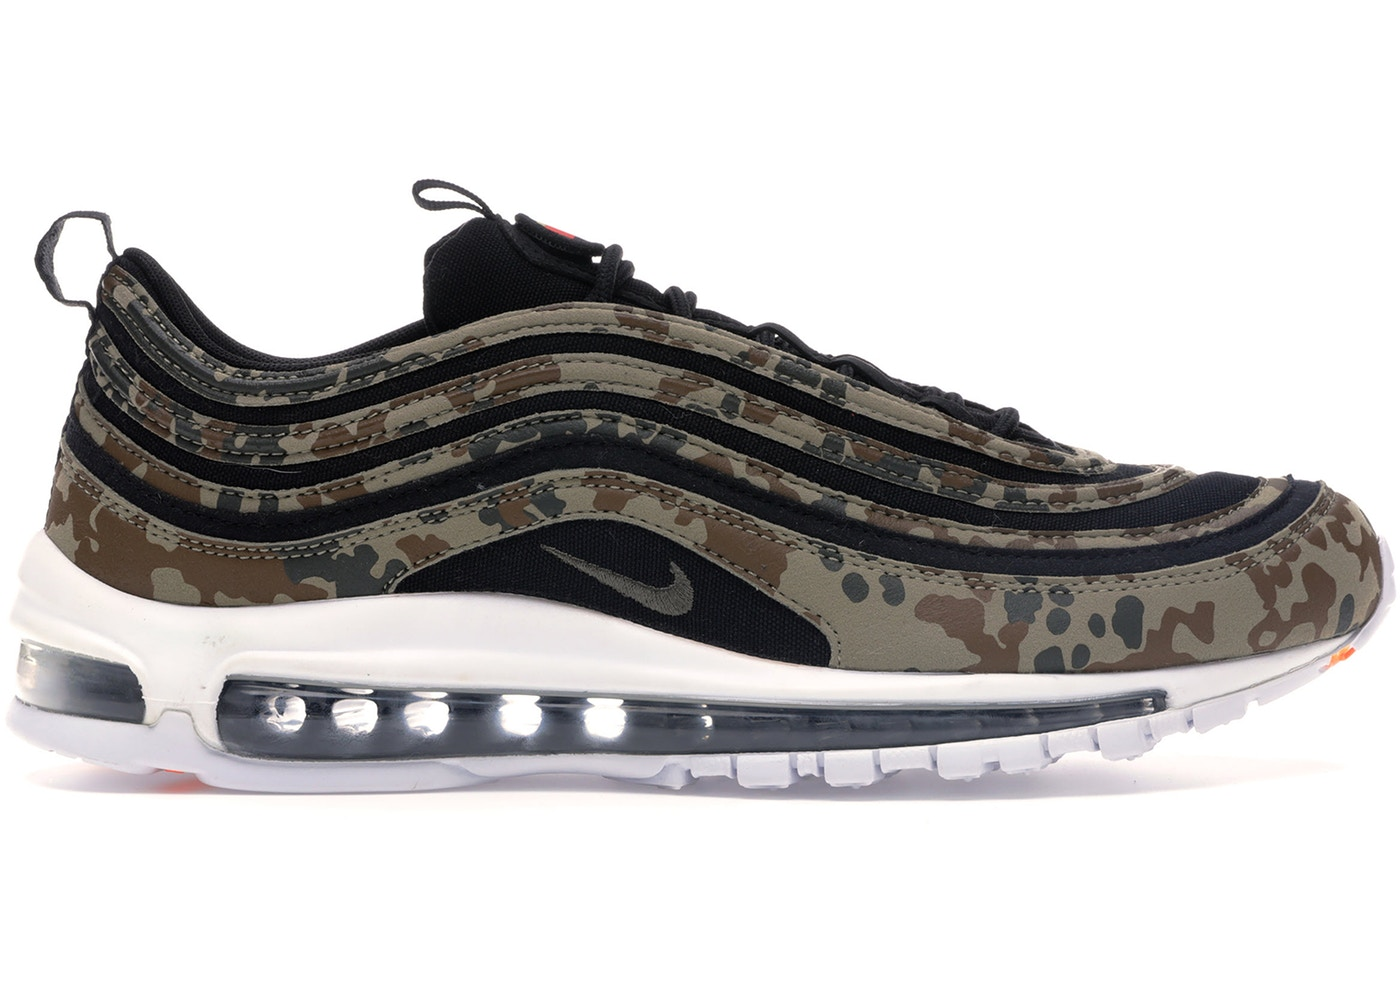 ナイキ NIKE エア マックス カントリー スニーカー 【 AIR MAX 97 COUNTRY CAMO GERMANY BAMBOO BLACKDARK KHAKISEQUOIA 】 メンズ